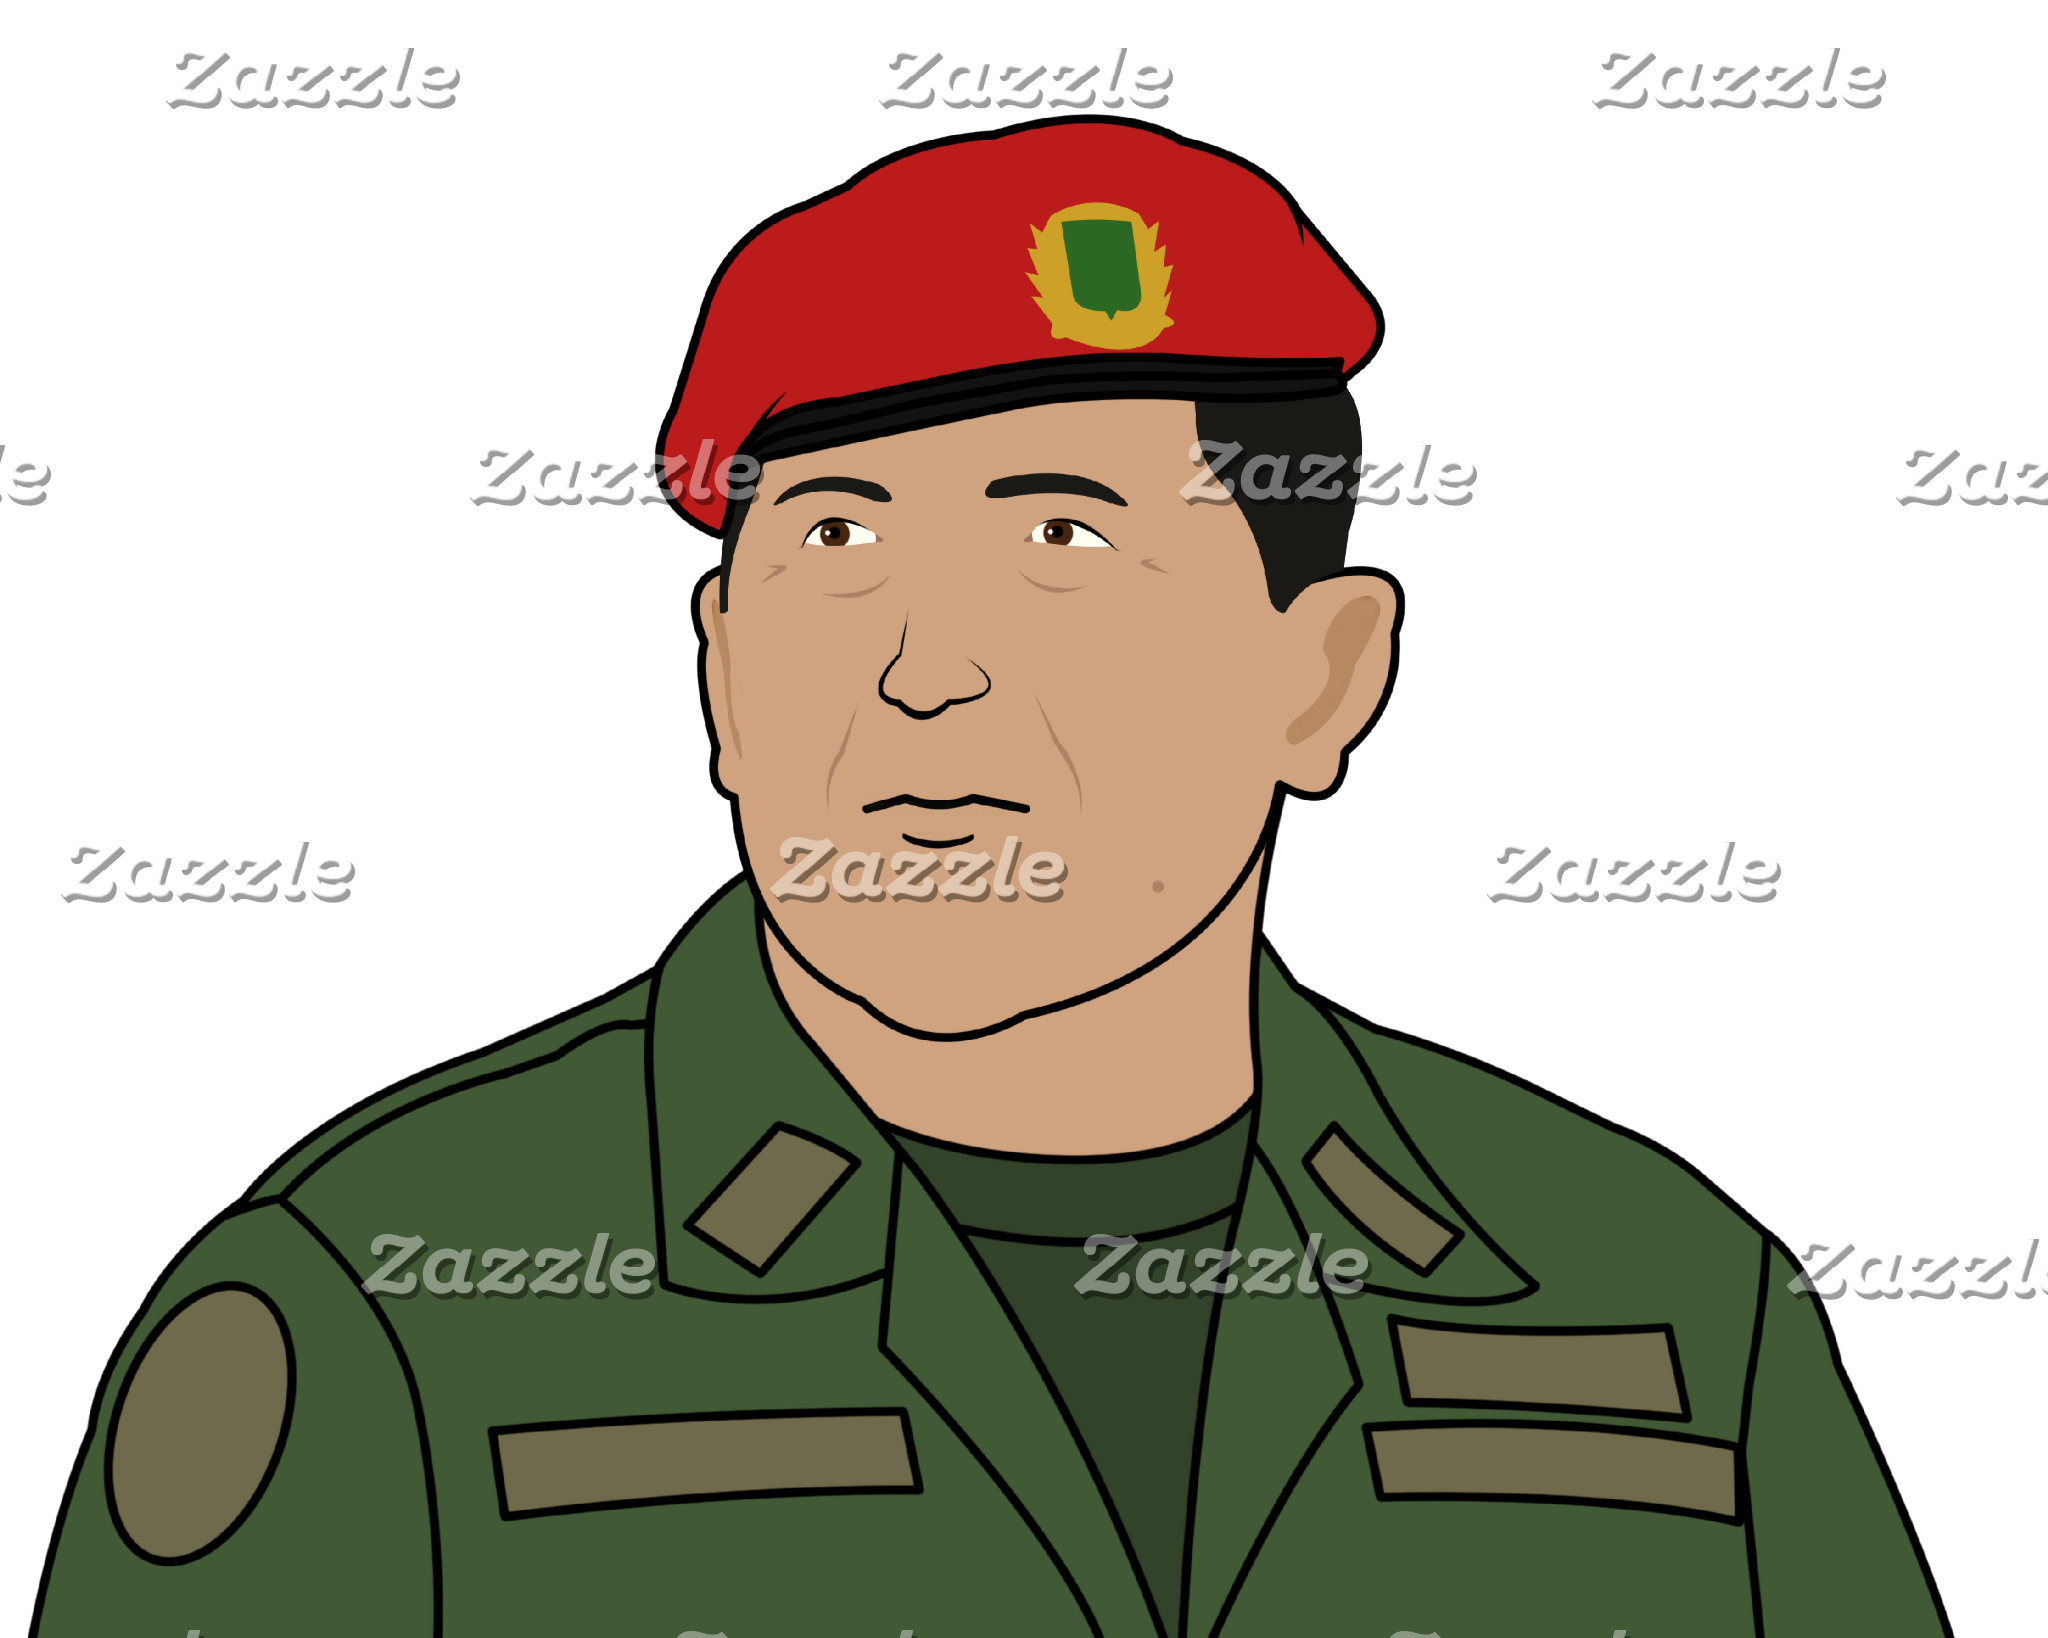 Hugo Chavez - Hugo the Red Hat Cartoon style